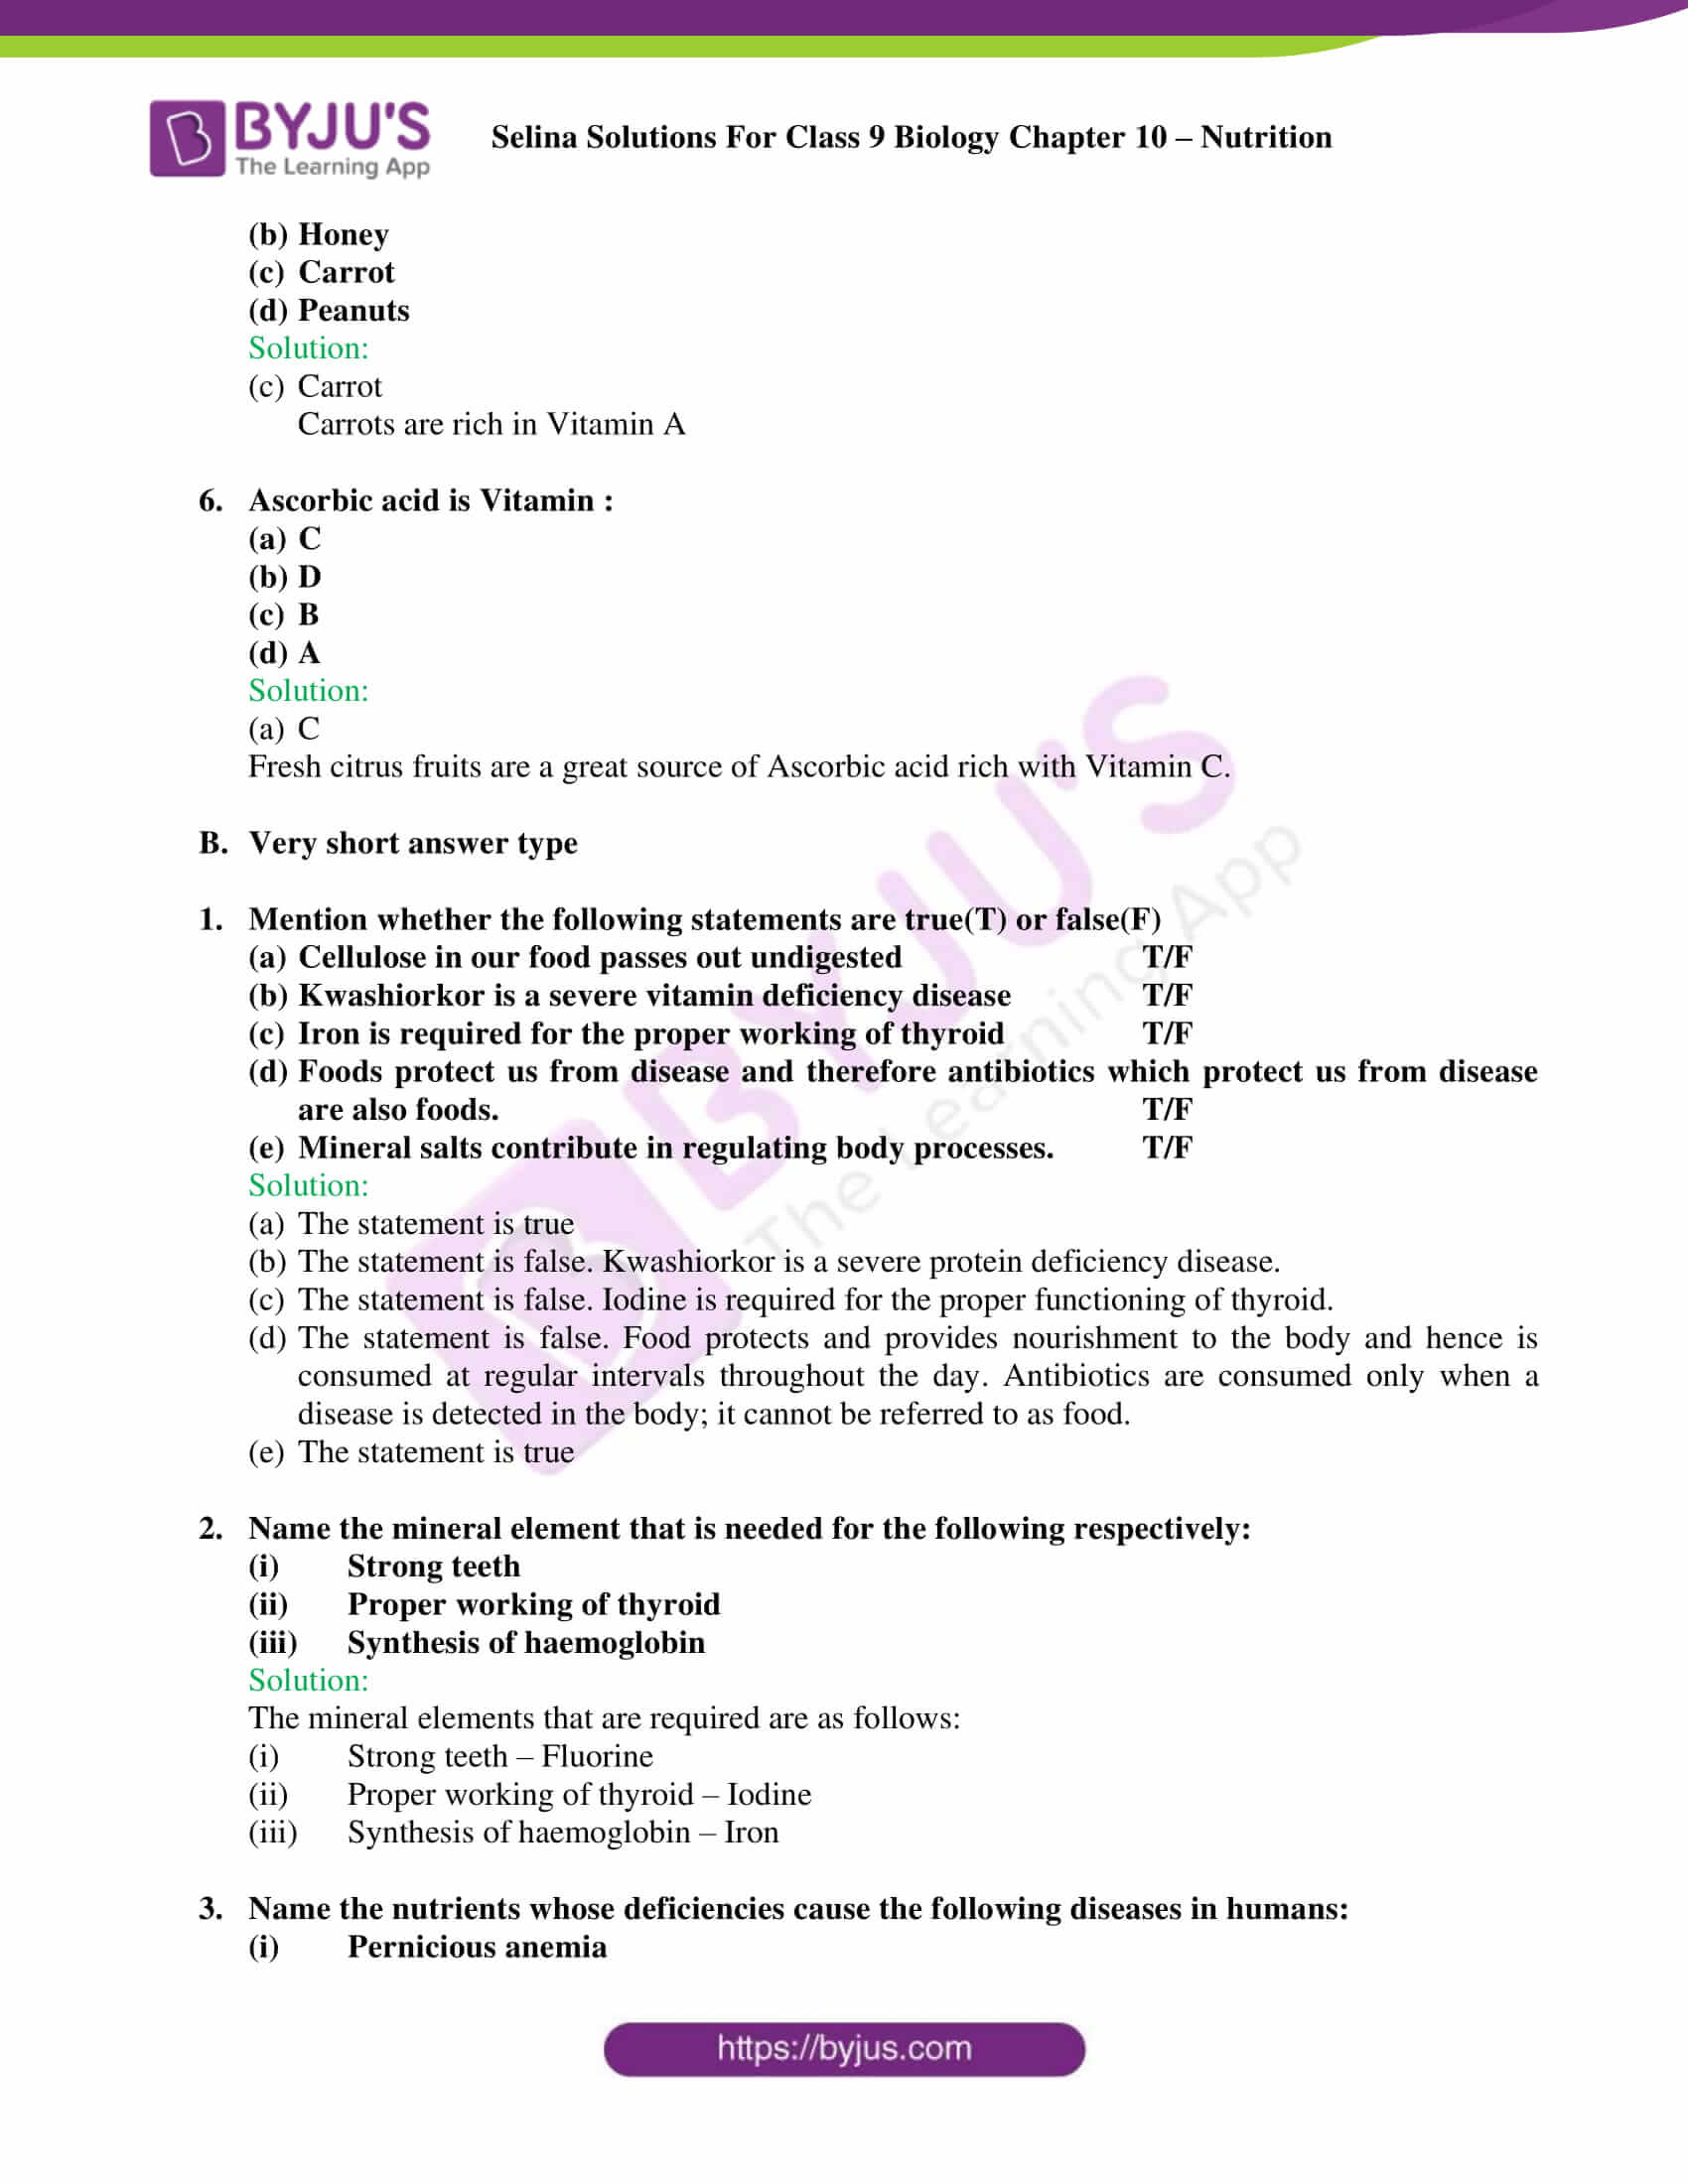 selina Solutions For Class 9 Biology Chapter 10 part 3